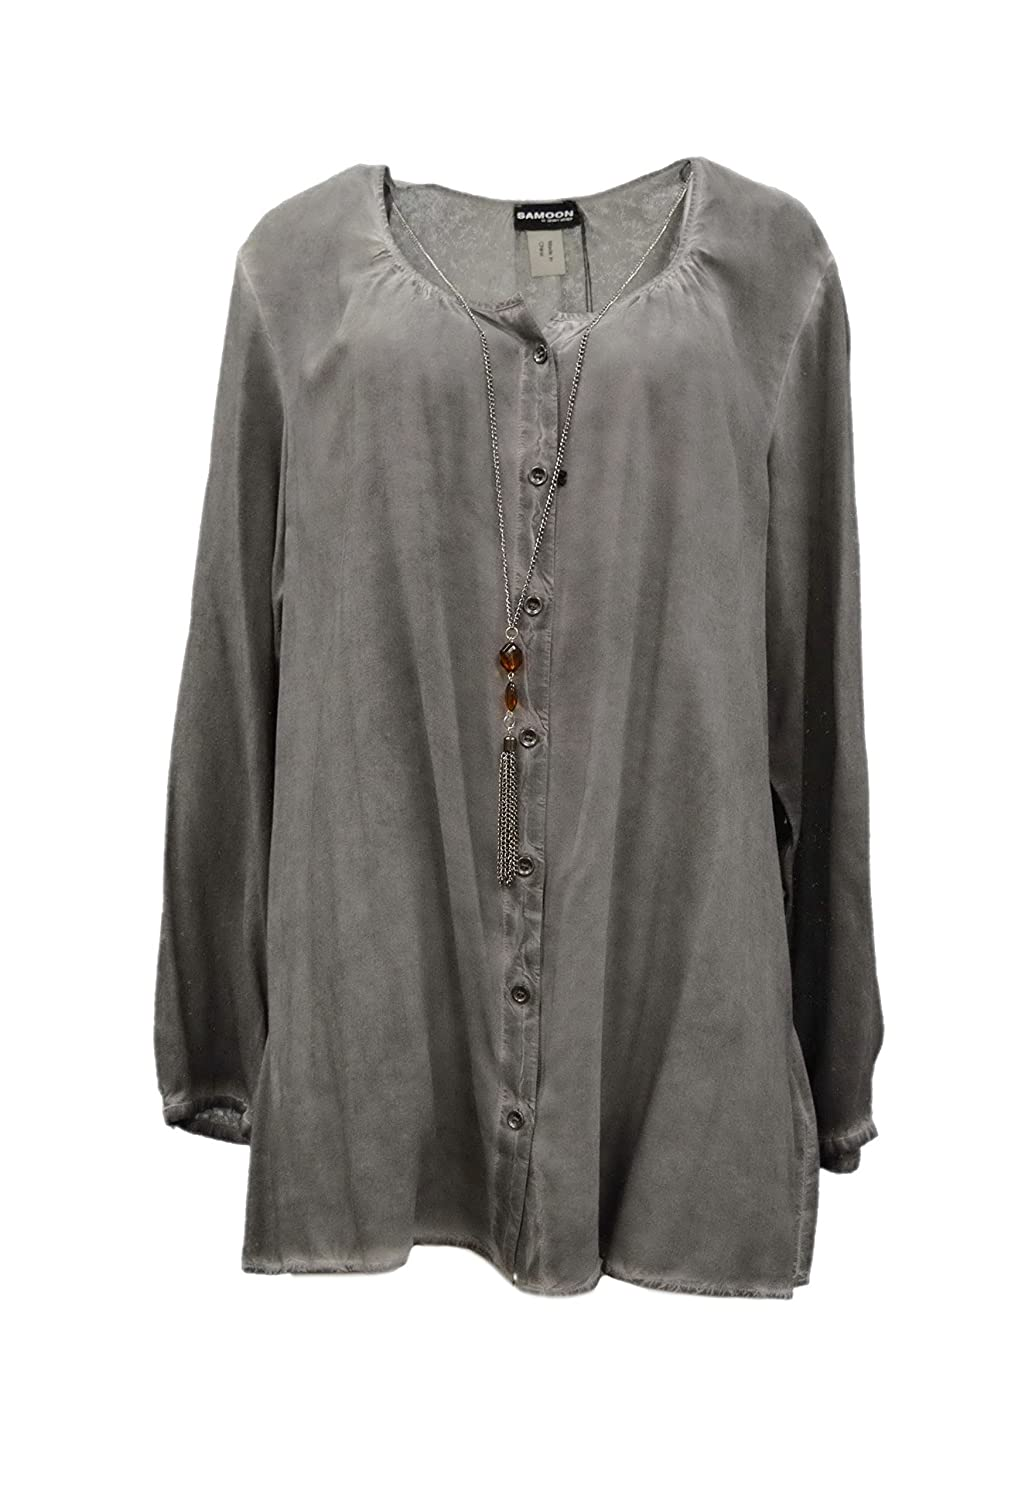 SAMOON BY GERRY WEBER Womens Button Front Tunic Blouse Shirt Grey Sz 16 220535E